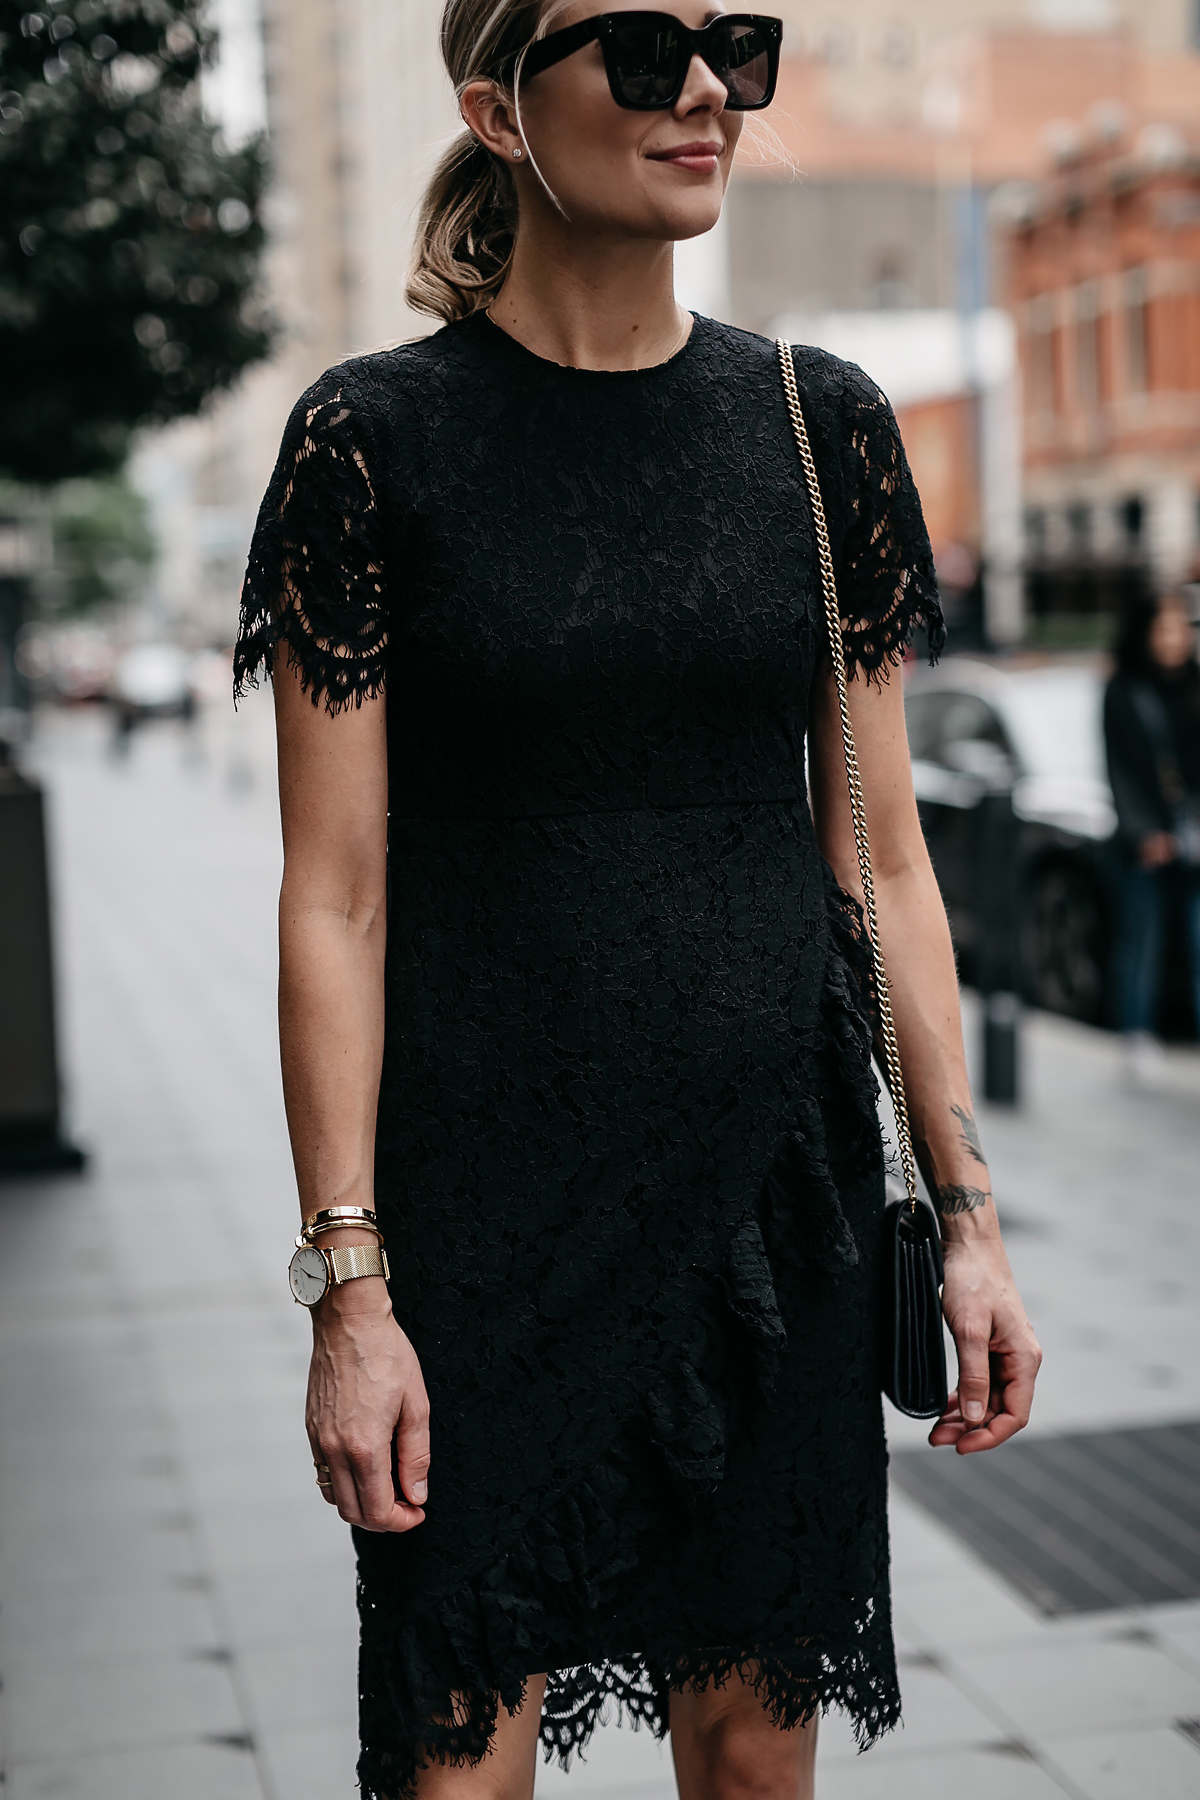 Blonde Woman Wearing Rachel Parcell Black Lace Dress Fashion Jackson Dallas Blogger Fashion Blogger Street Style